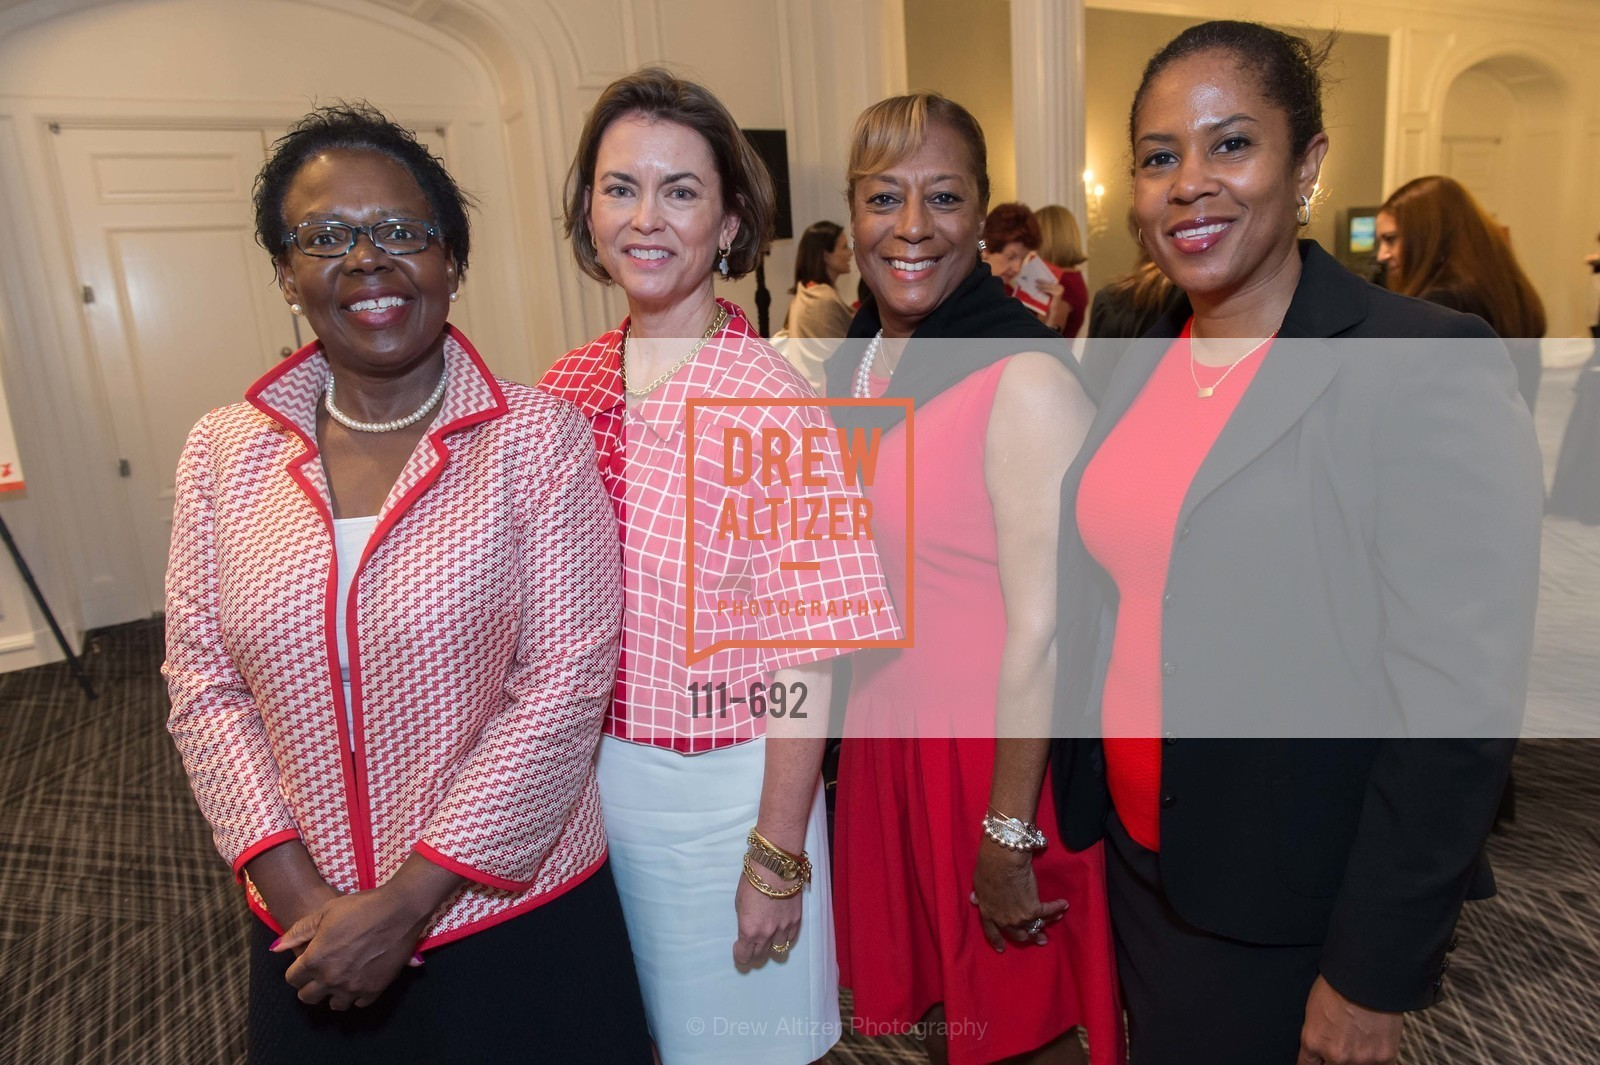 Audrey Drichi, Mary Francis, Laraine Daye, Josetta James, 2015 GoRed for Women Luncheon, US, May 2nd, 2015,Drew Altizer, Drew Altizer Photography, full-service event agency, private events, San Francisco photographer, photographer California